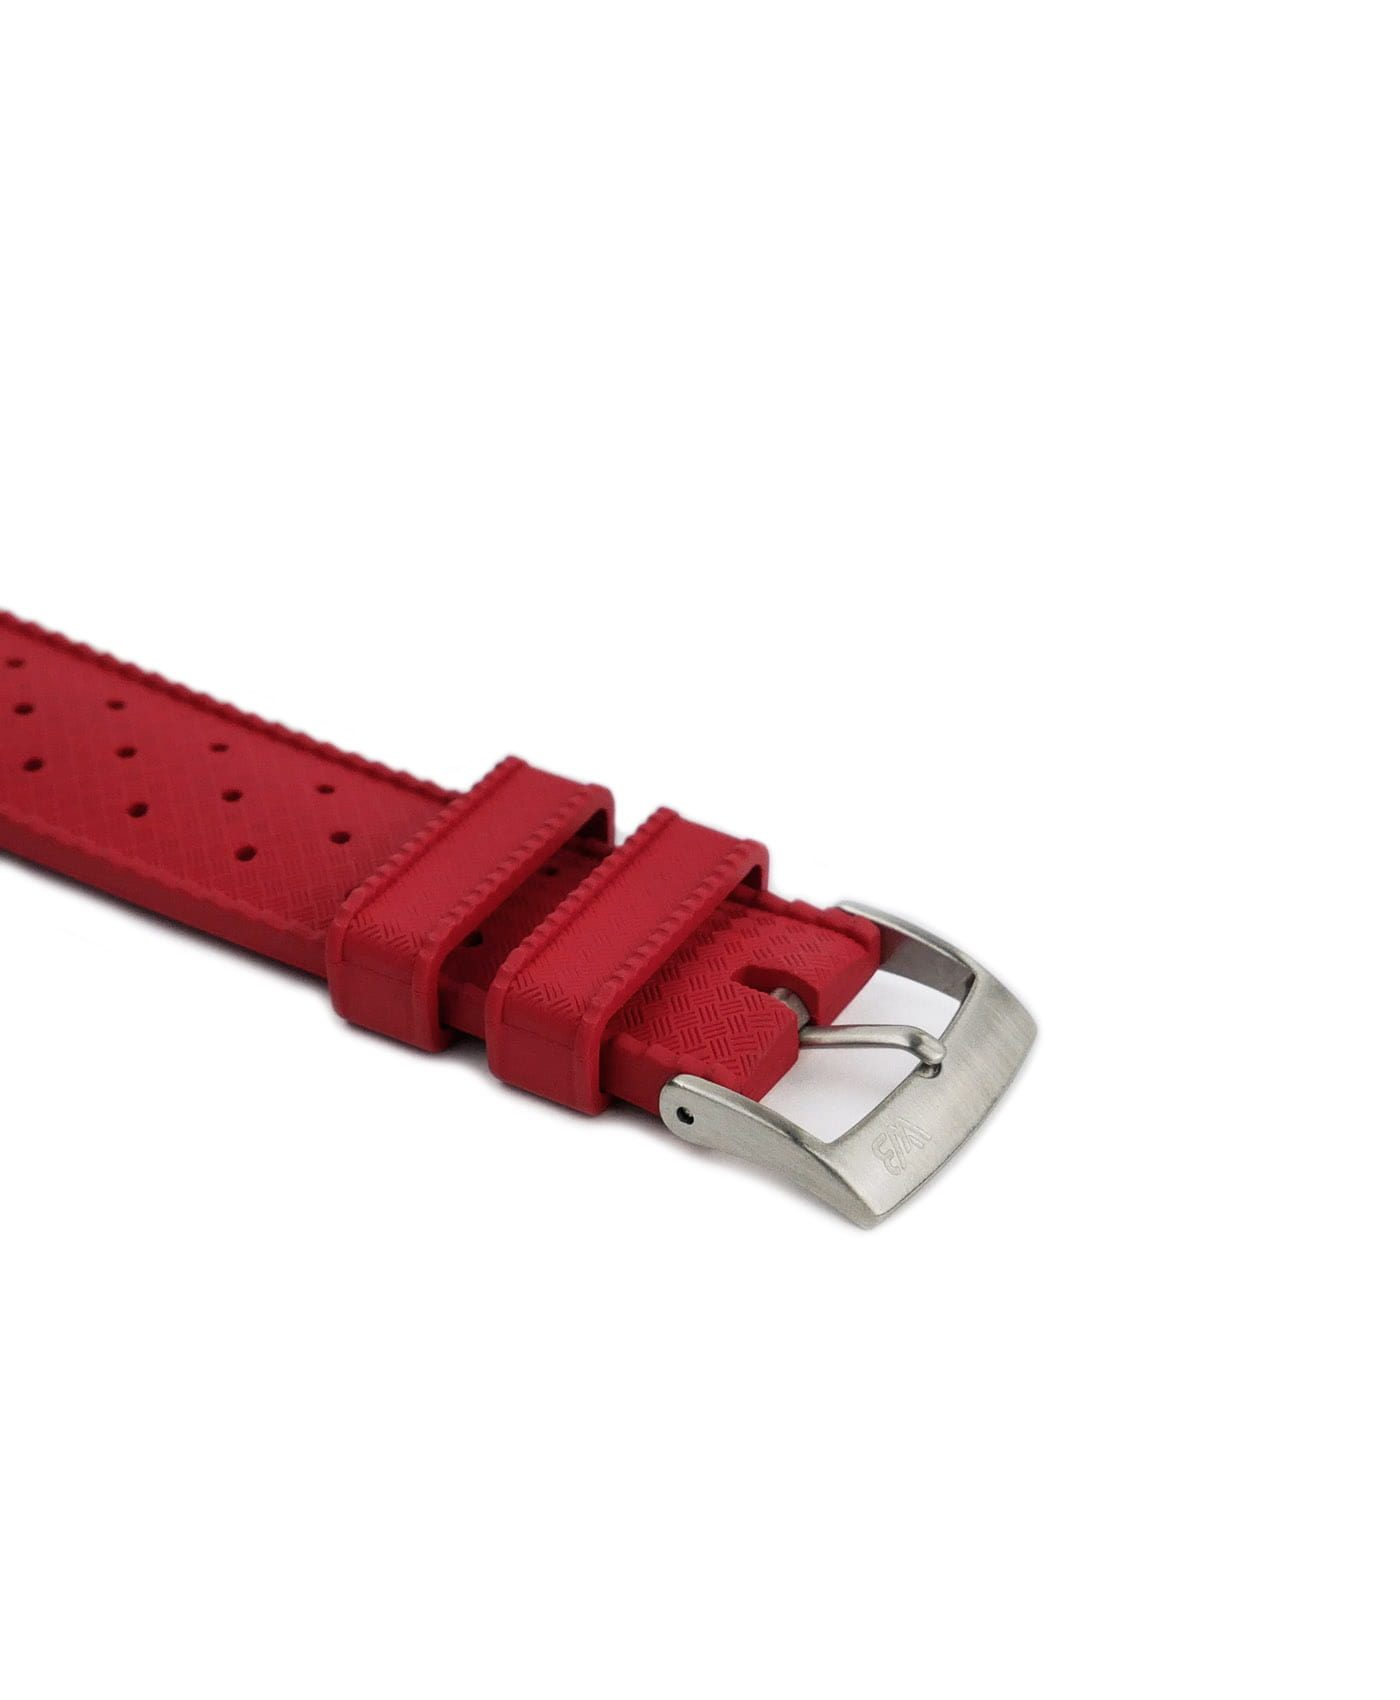 Tropical Rubber watch strap_Red_Buckle